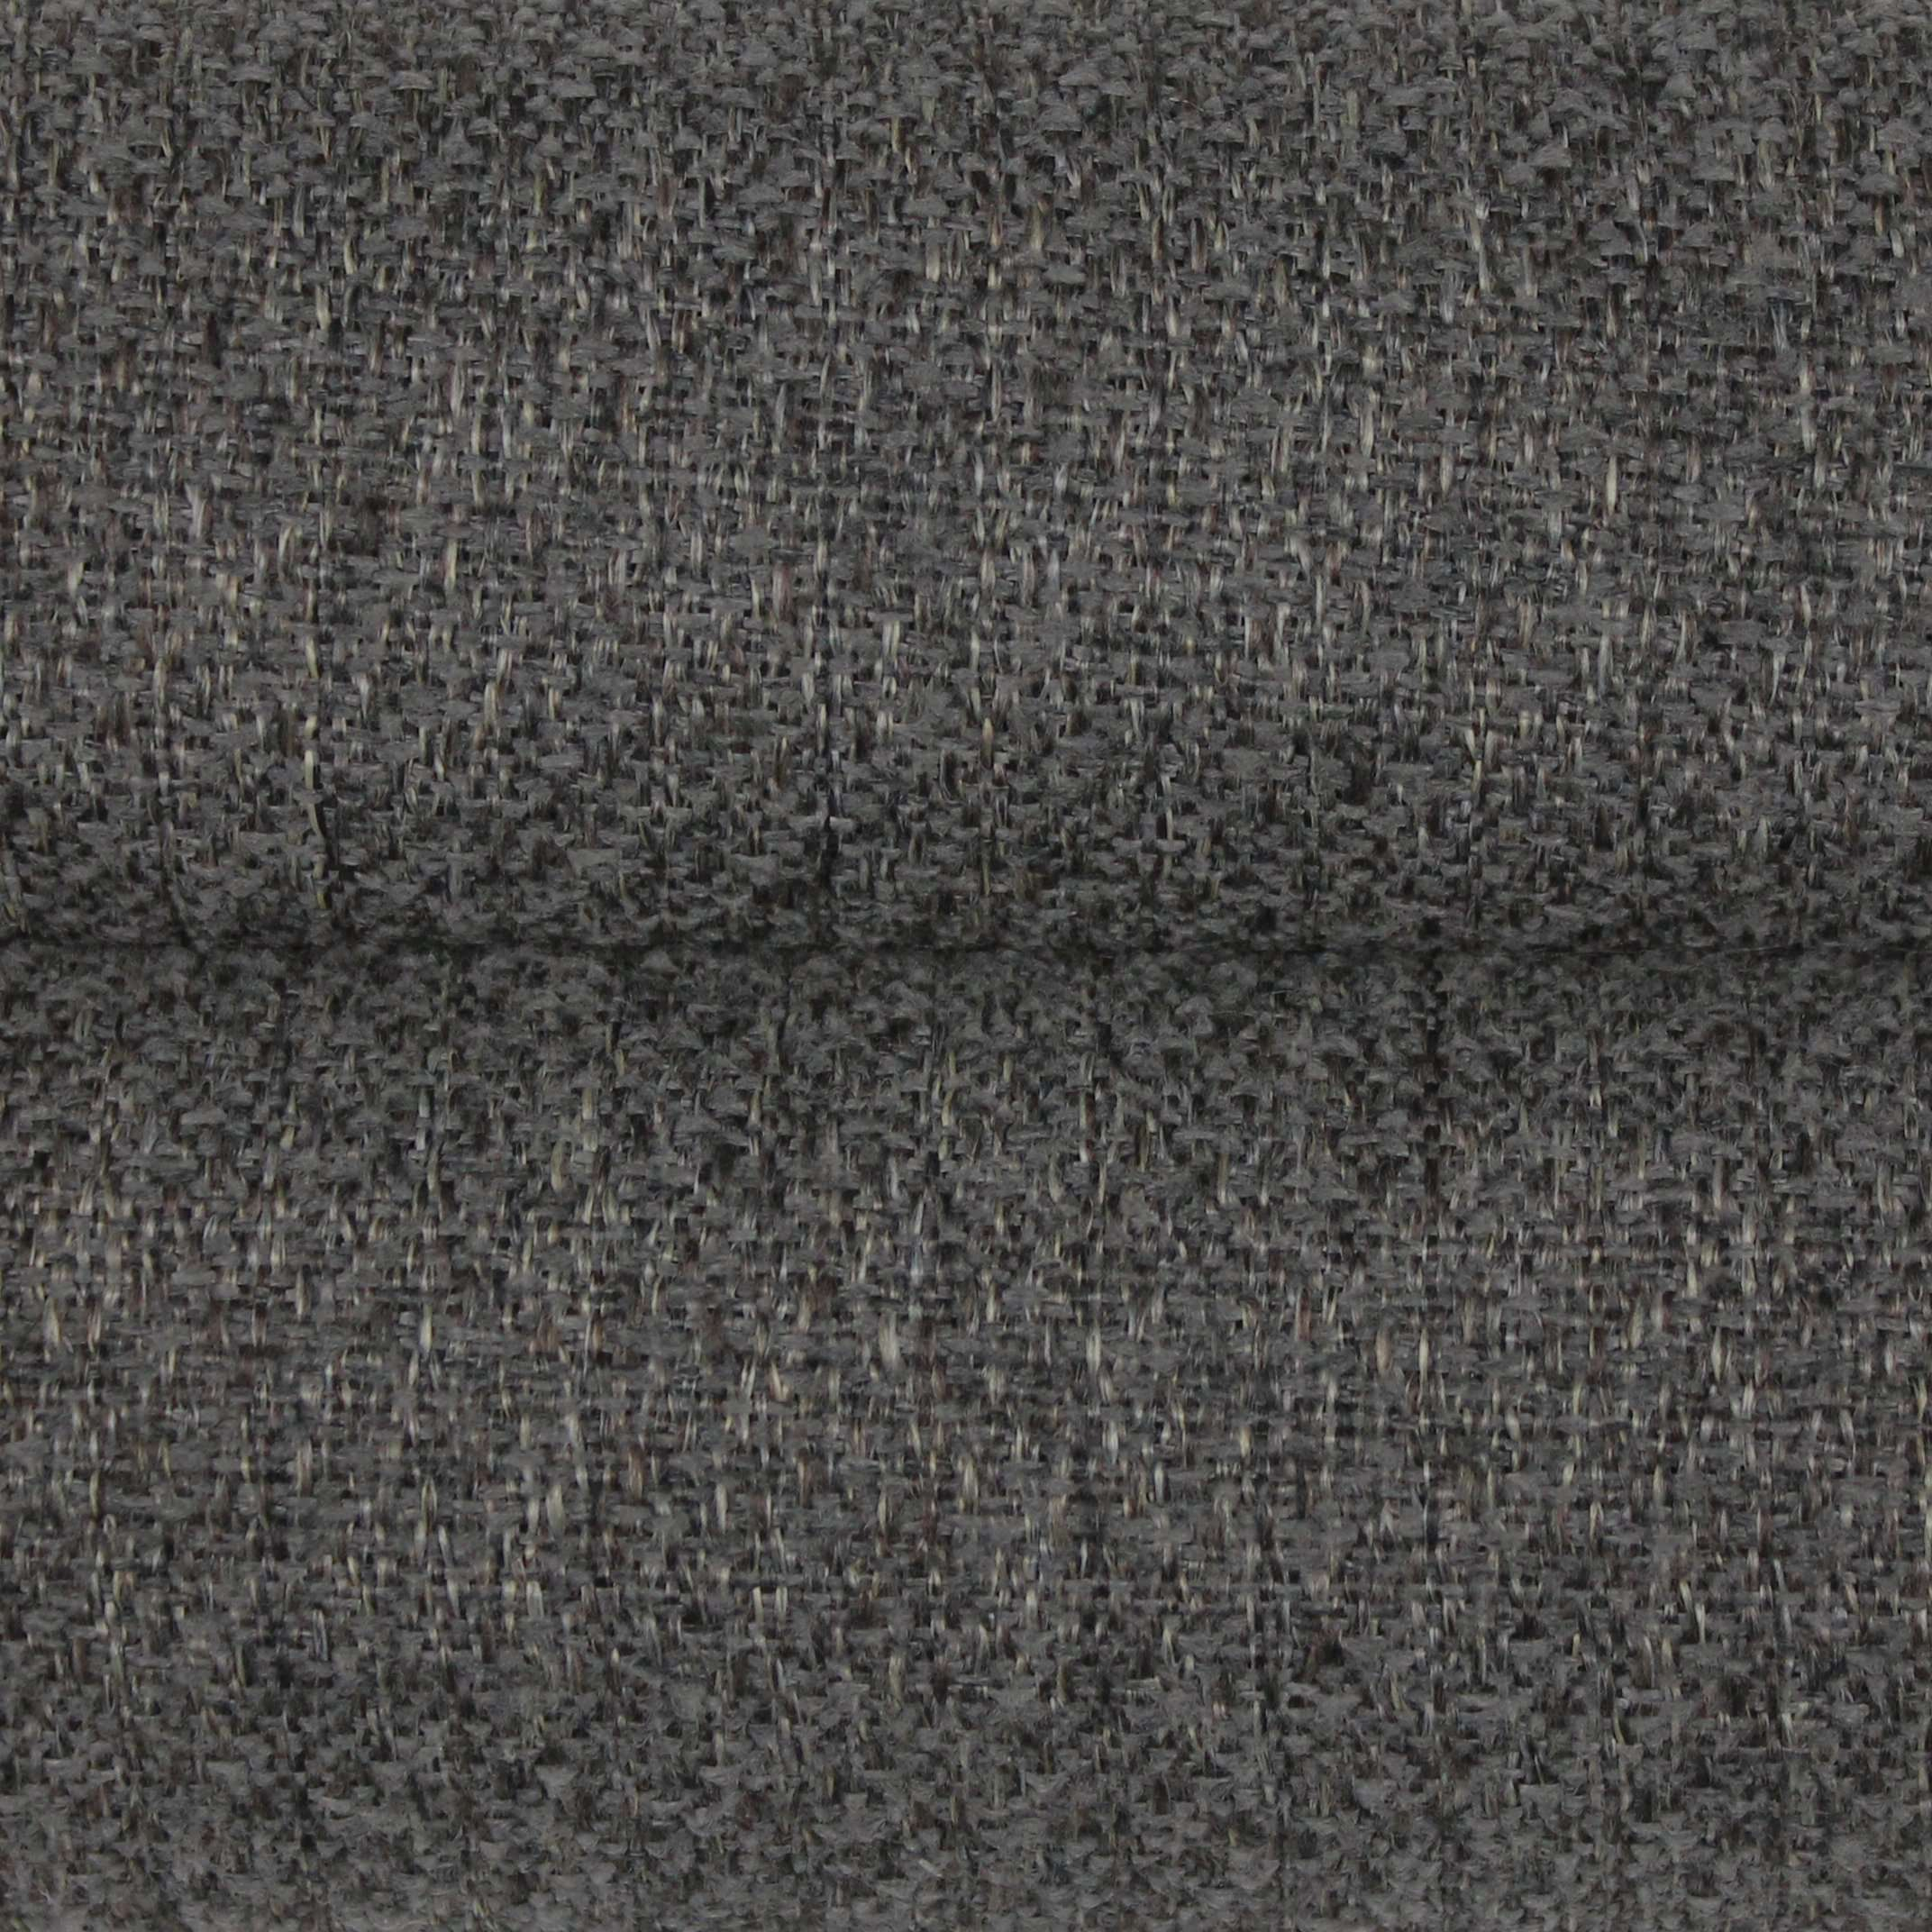 McAlister Textiles Highlands Rustic Plain Charcoal Grey Fabric Fabrics